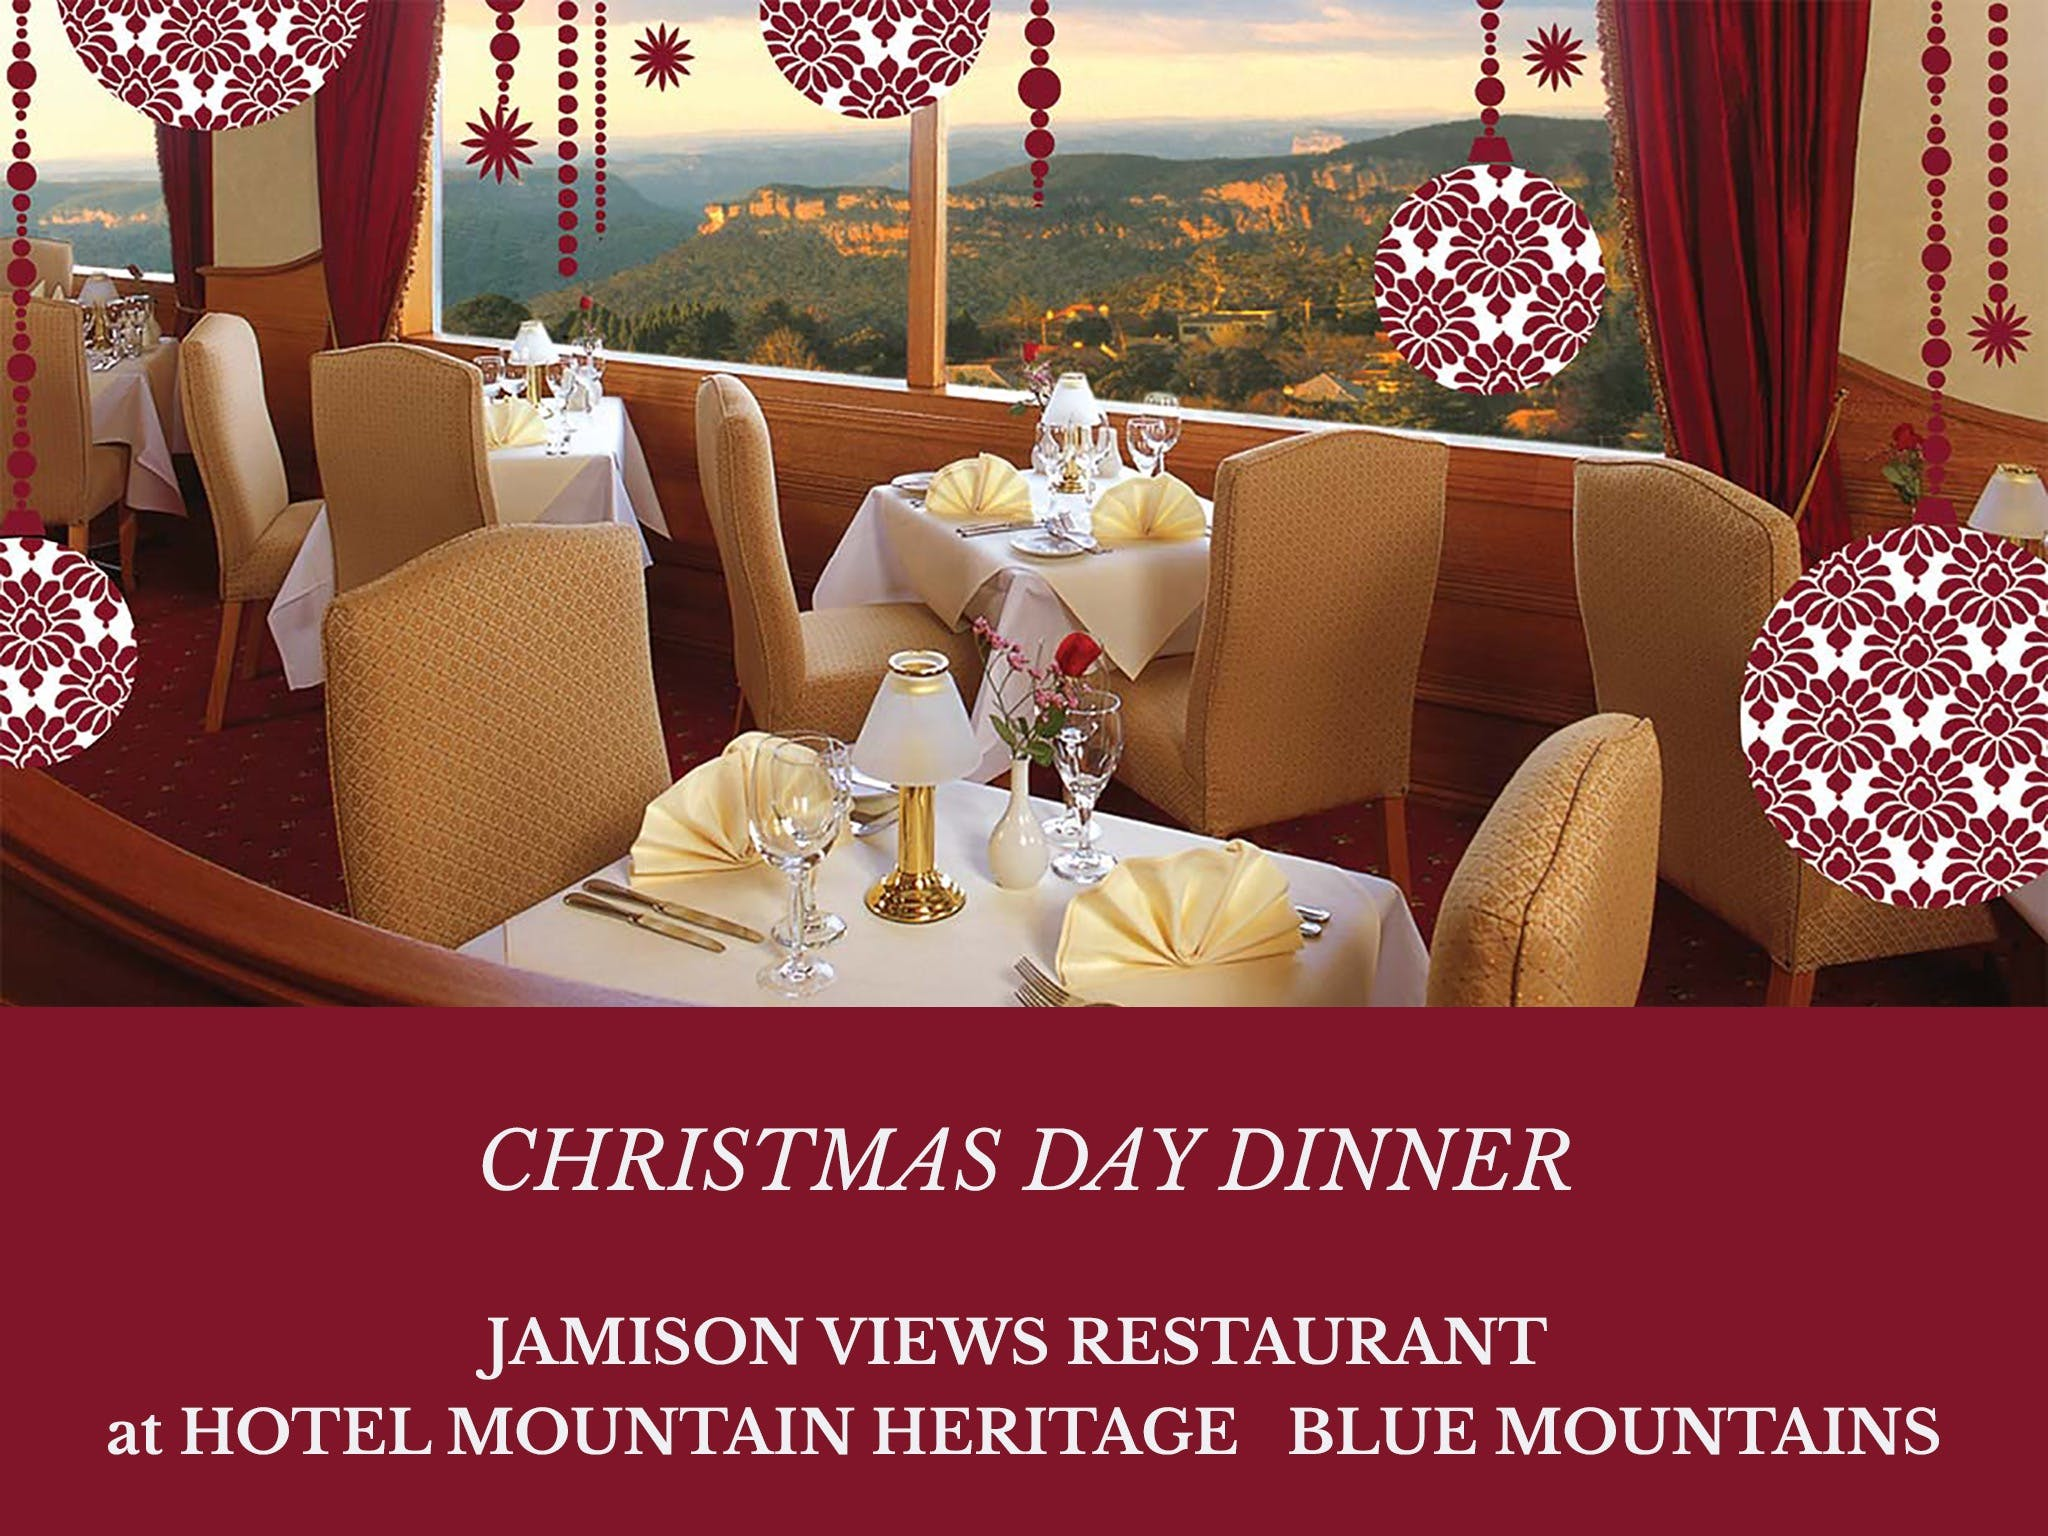 Christmas Day Dinner Hotel Mountain Heritage - Sydney Tourism